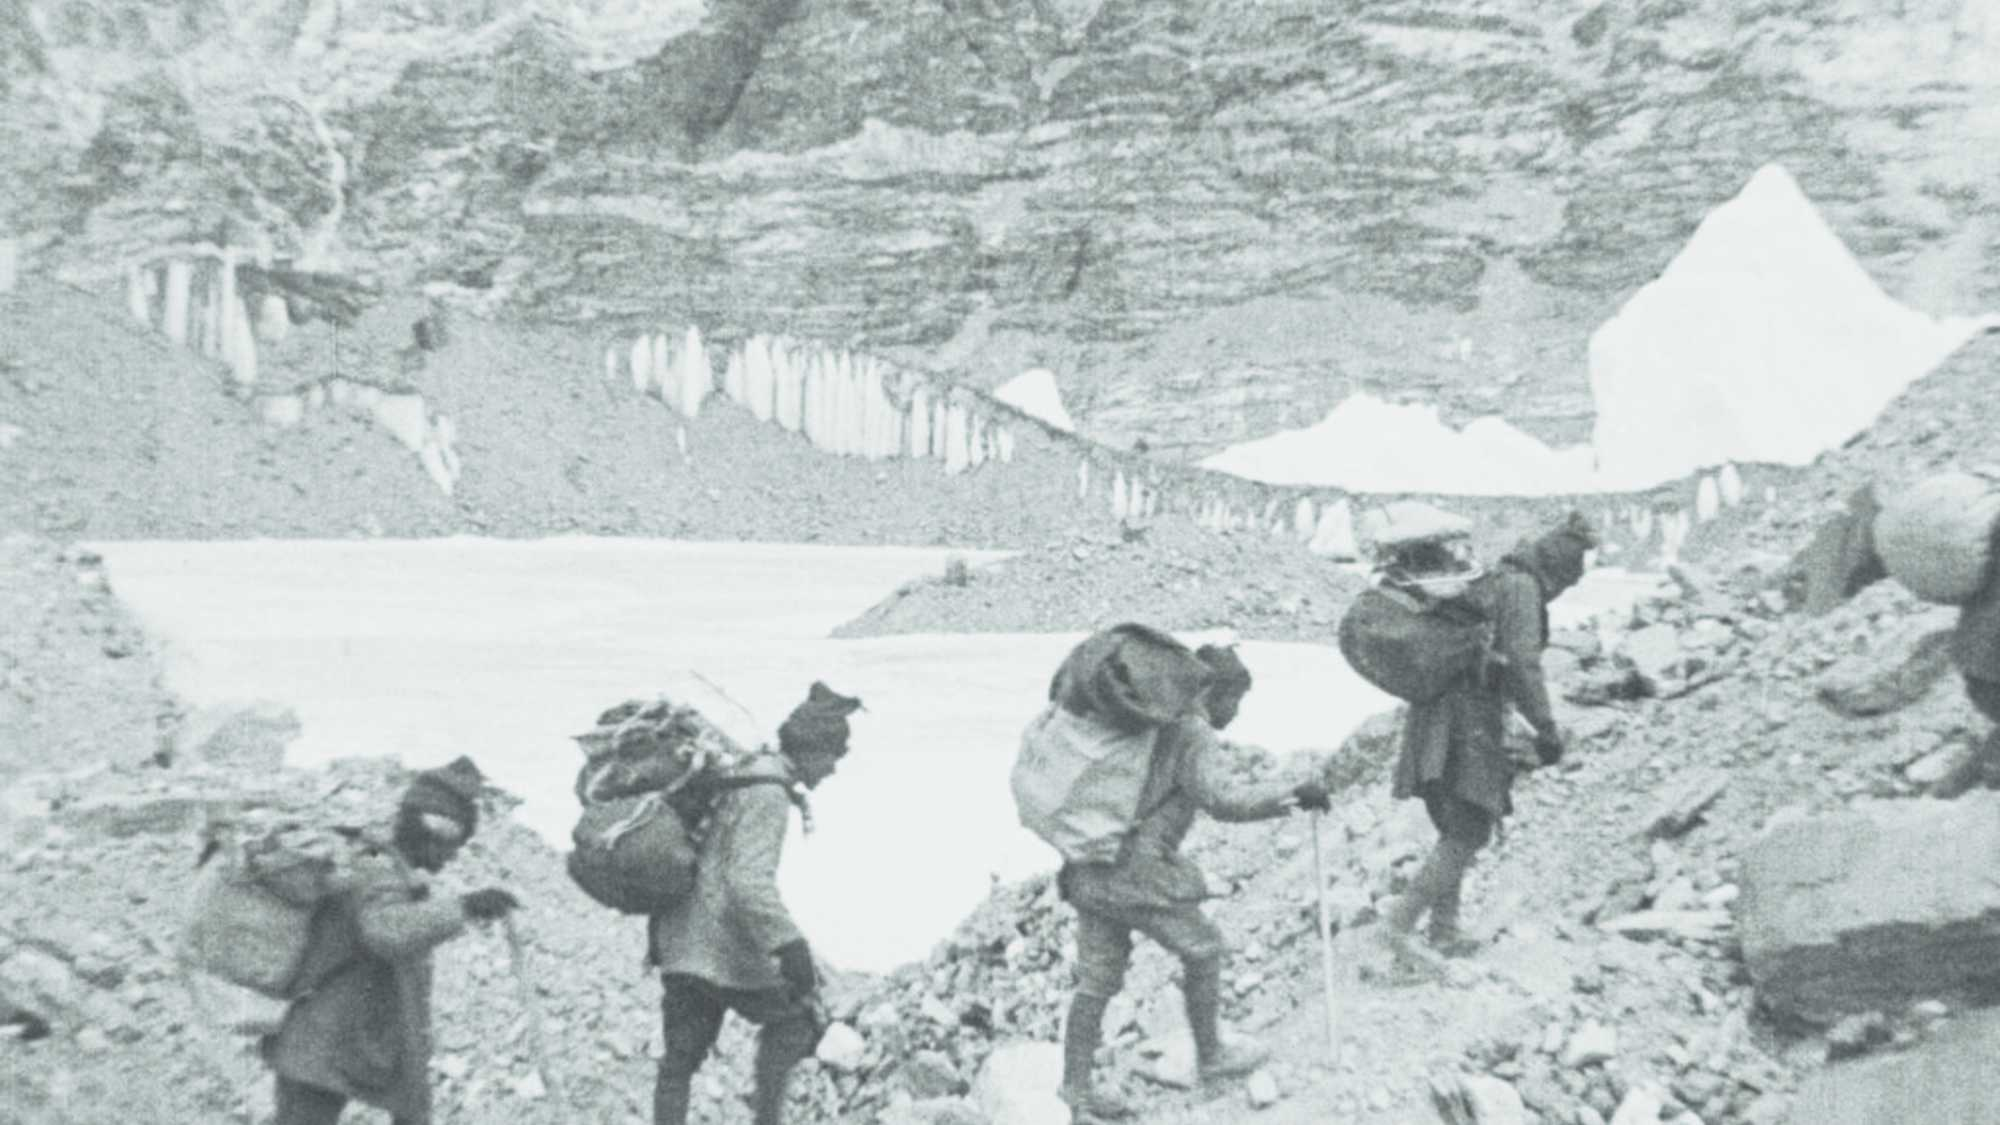 The Epic of Everest (image 3)